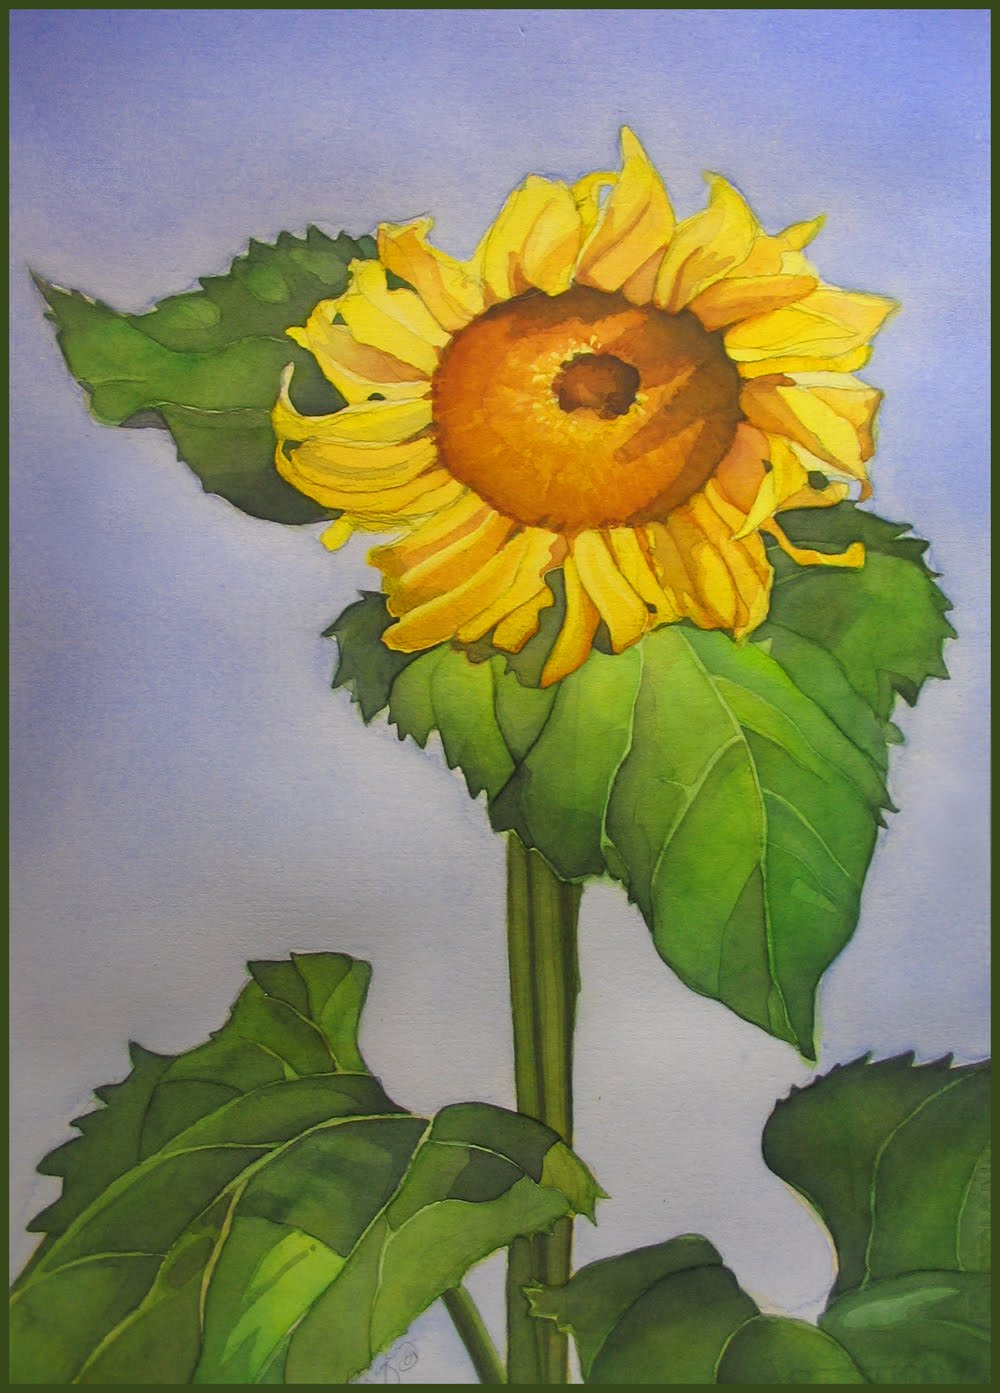 Sunflower copy.jpg